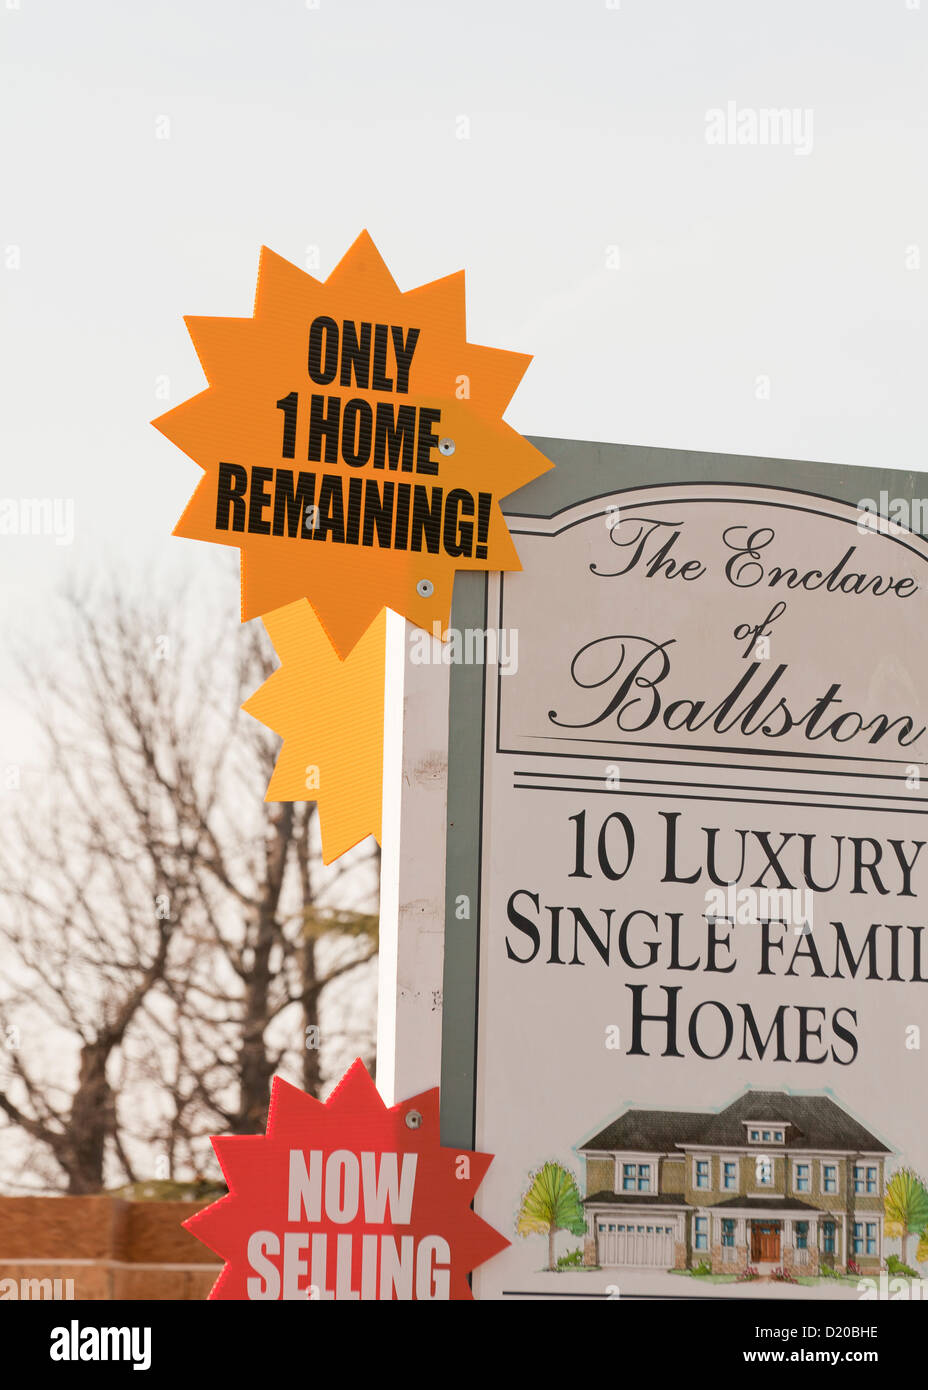 New home sales sign - Stock Image